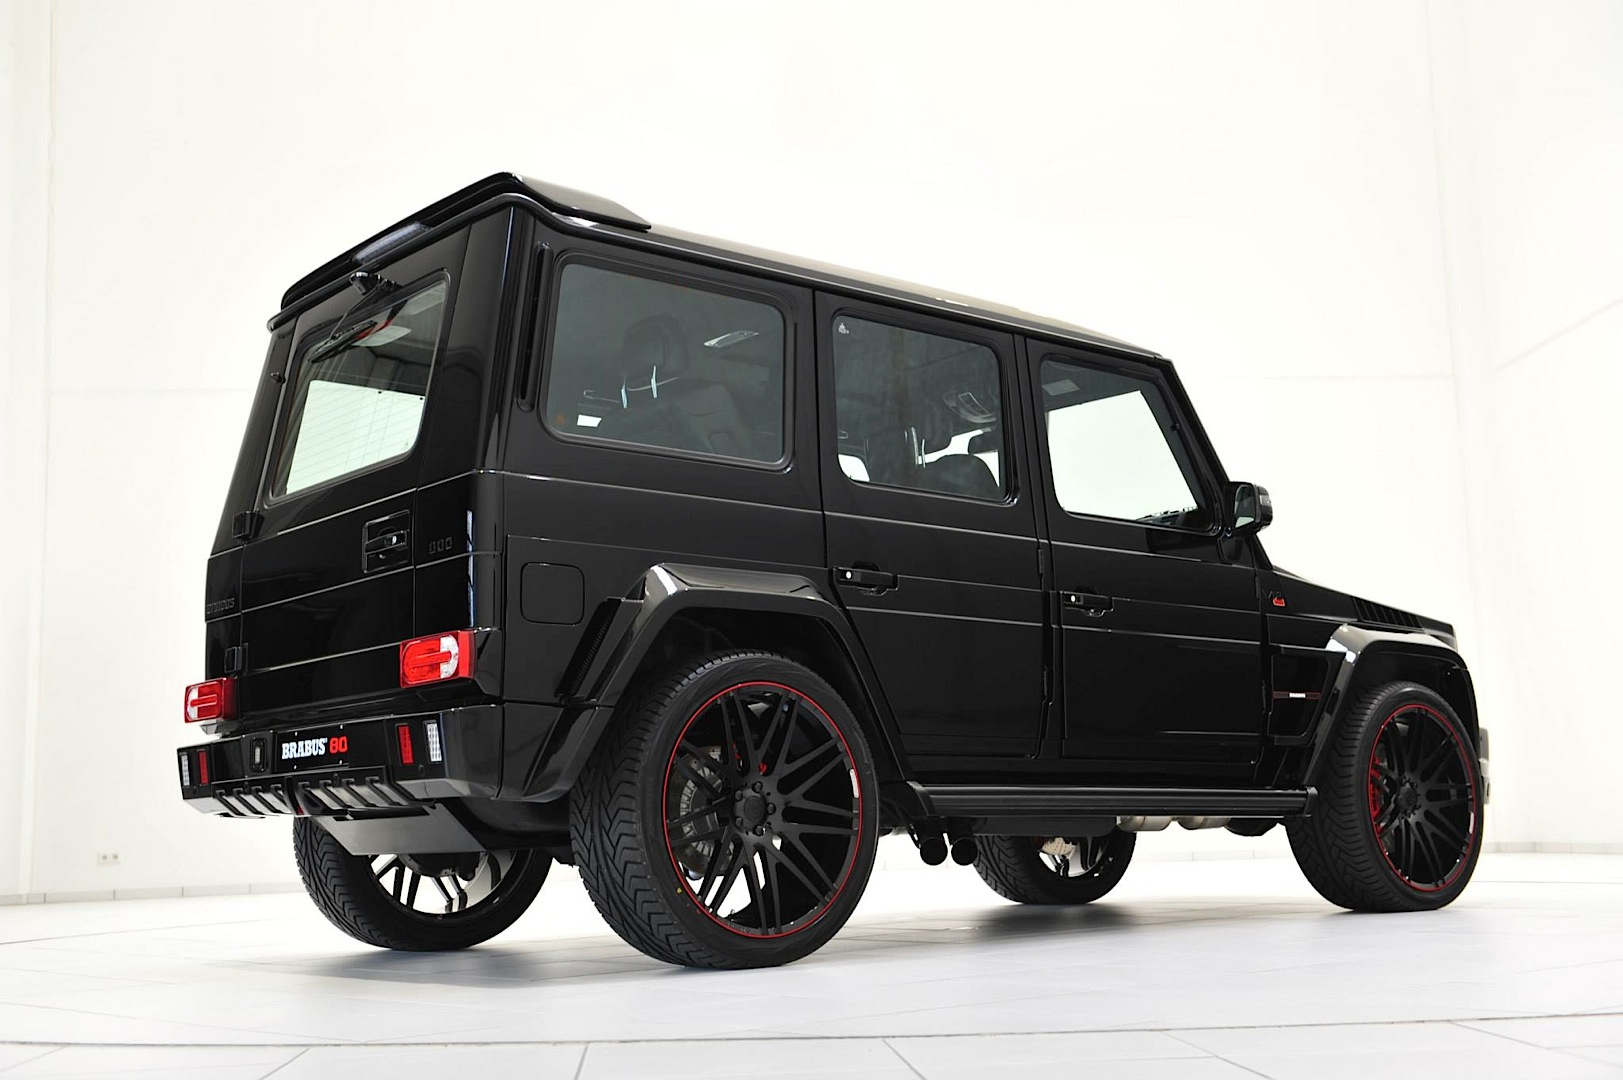 unholy 1000 hp g 65 amgmansory is for sale - autoevolution